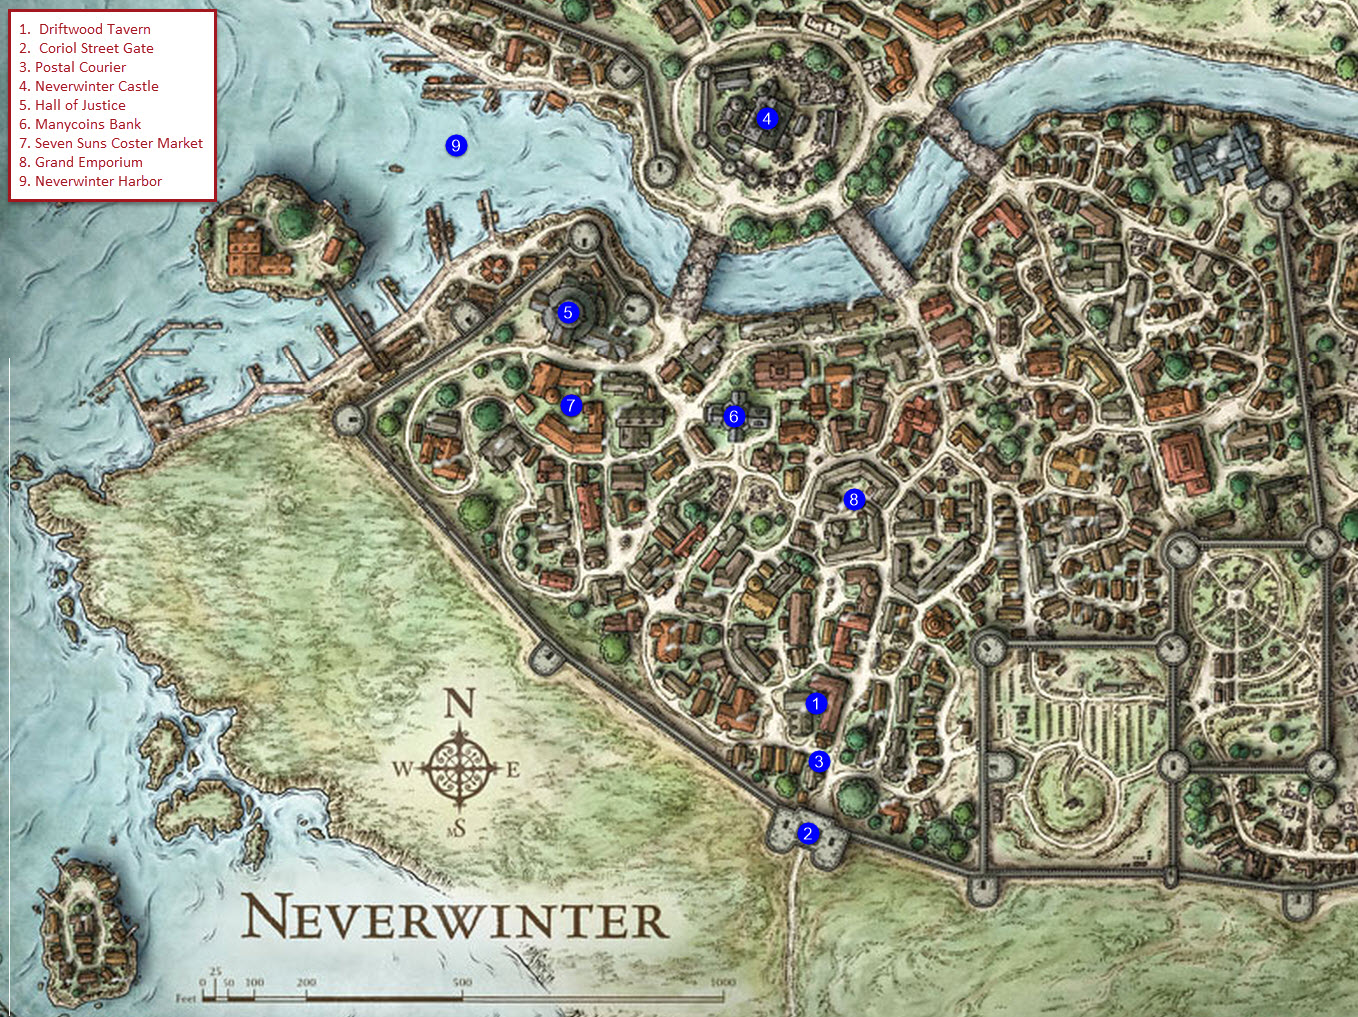 Neverwinter_-_Protector_s_Enclave.jpg